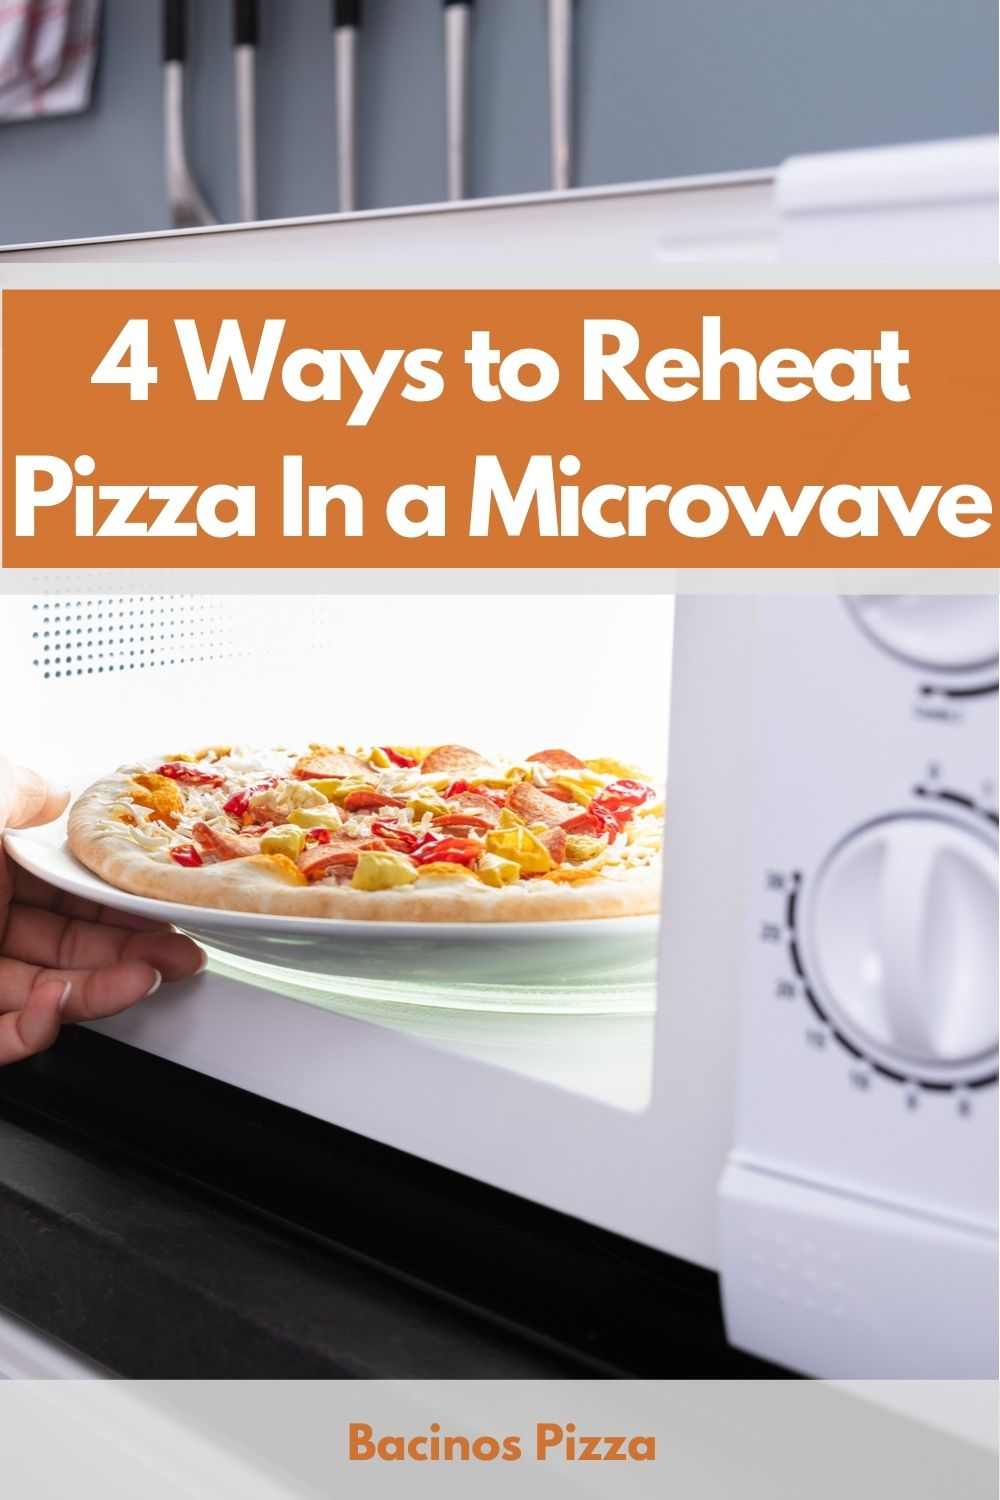 4 Ways to Reheat Pizza In a Microwave pin 2